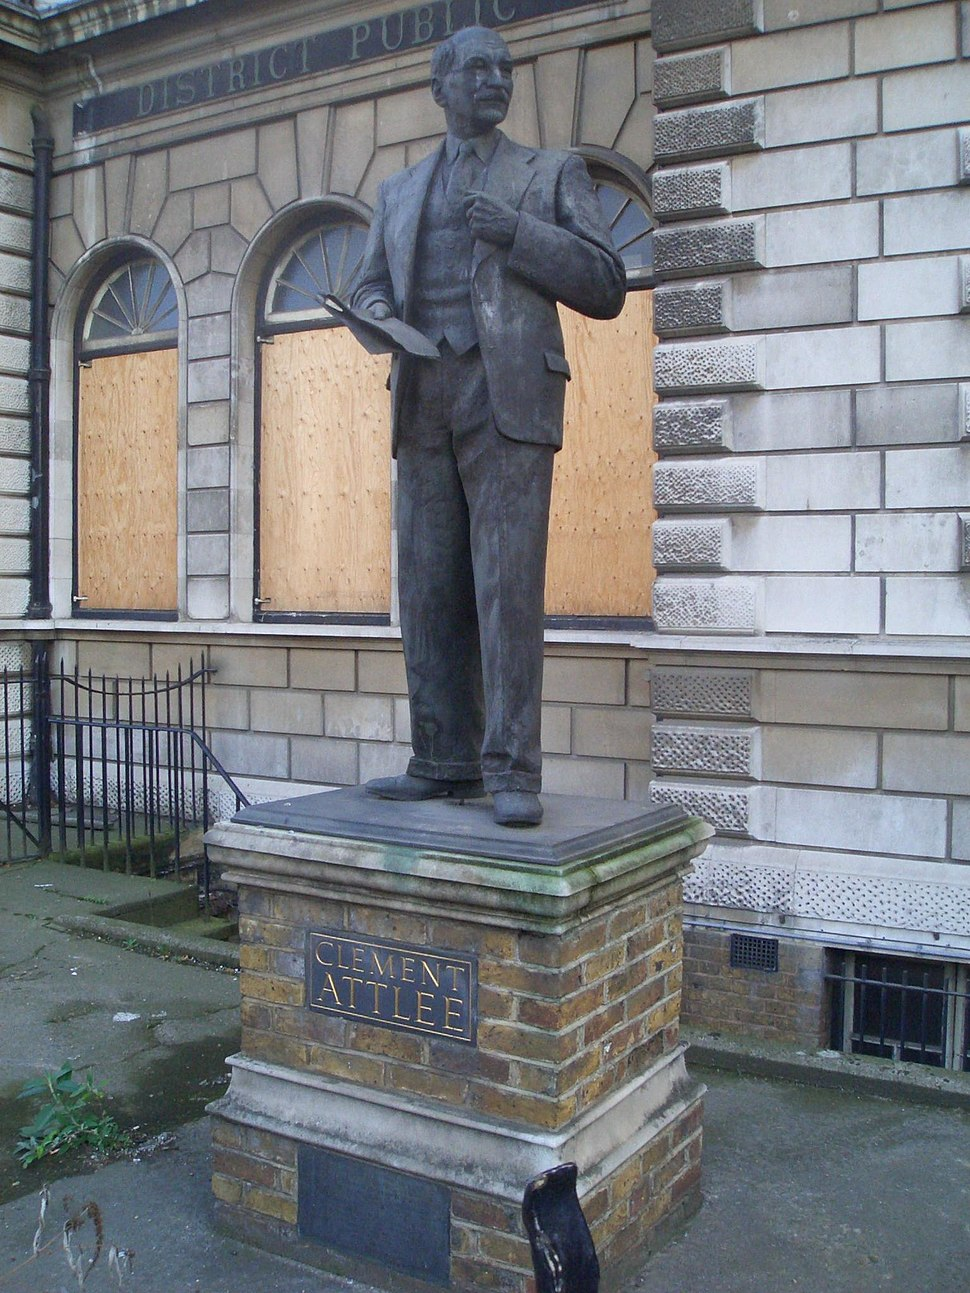 Clement Attlee statue - Limehouse library